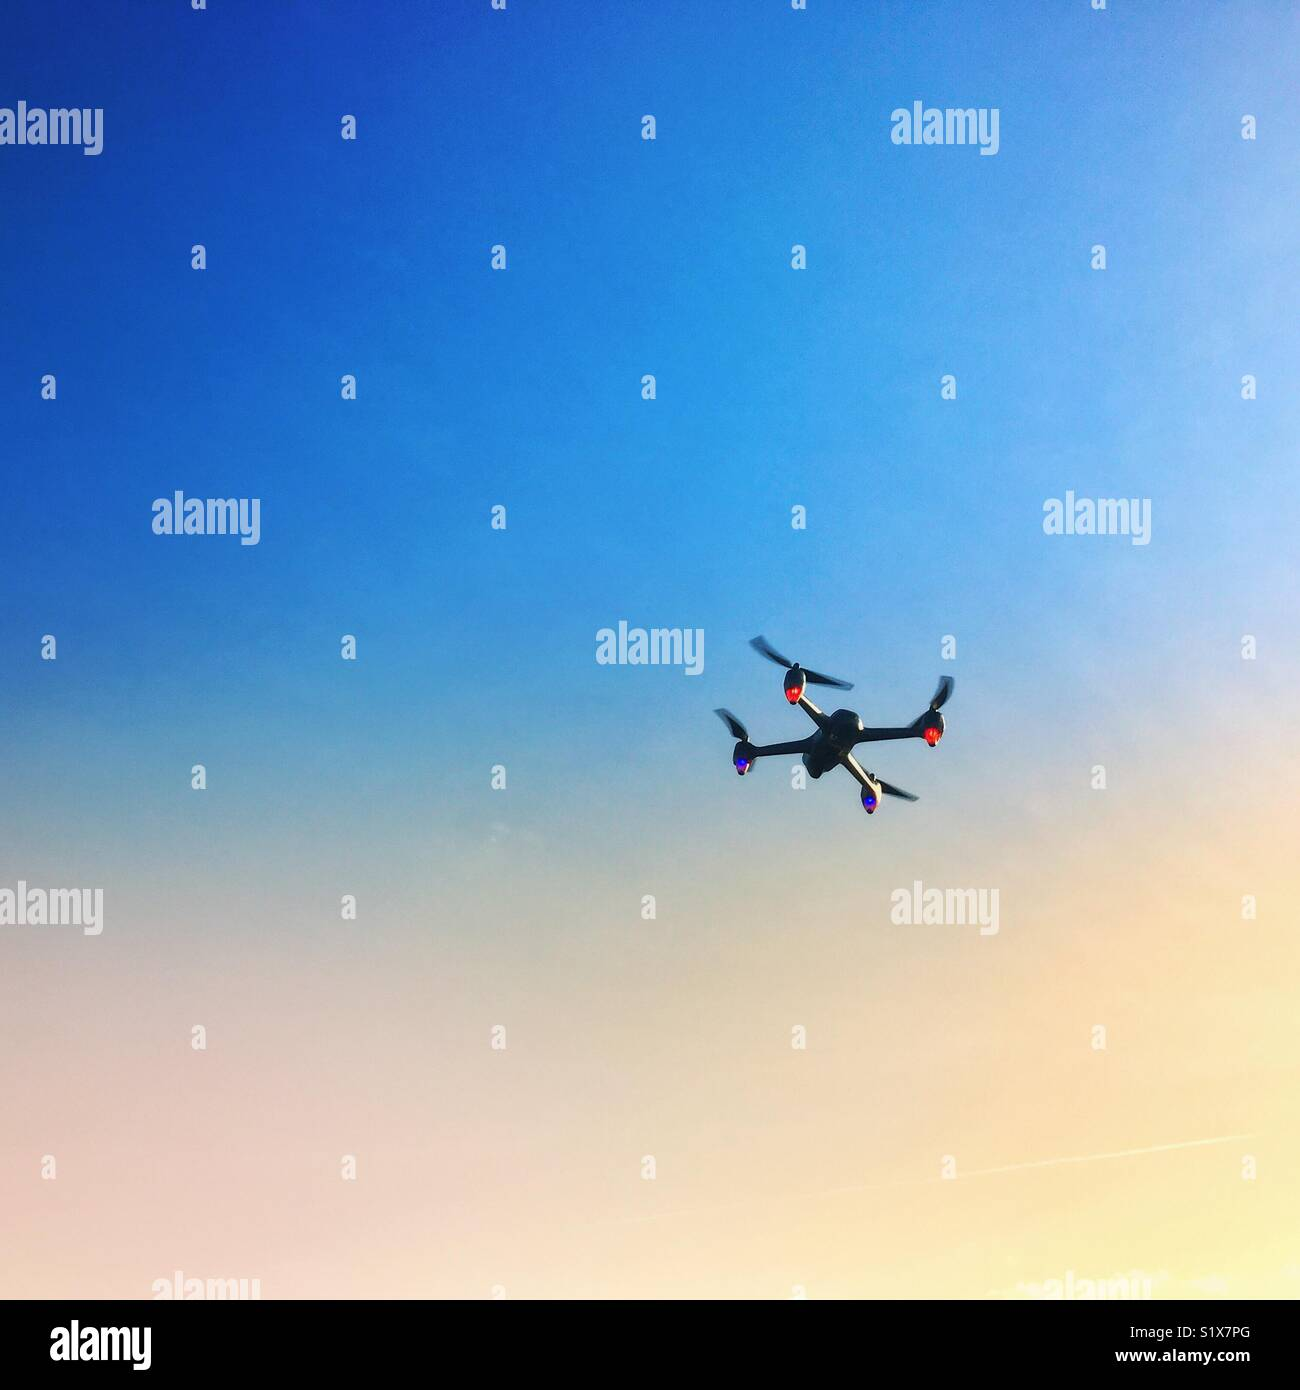 A flying drone in the sky - Stock Image